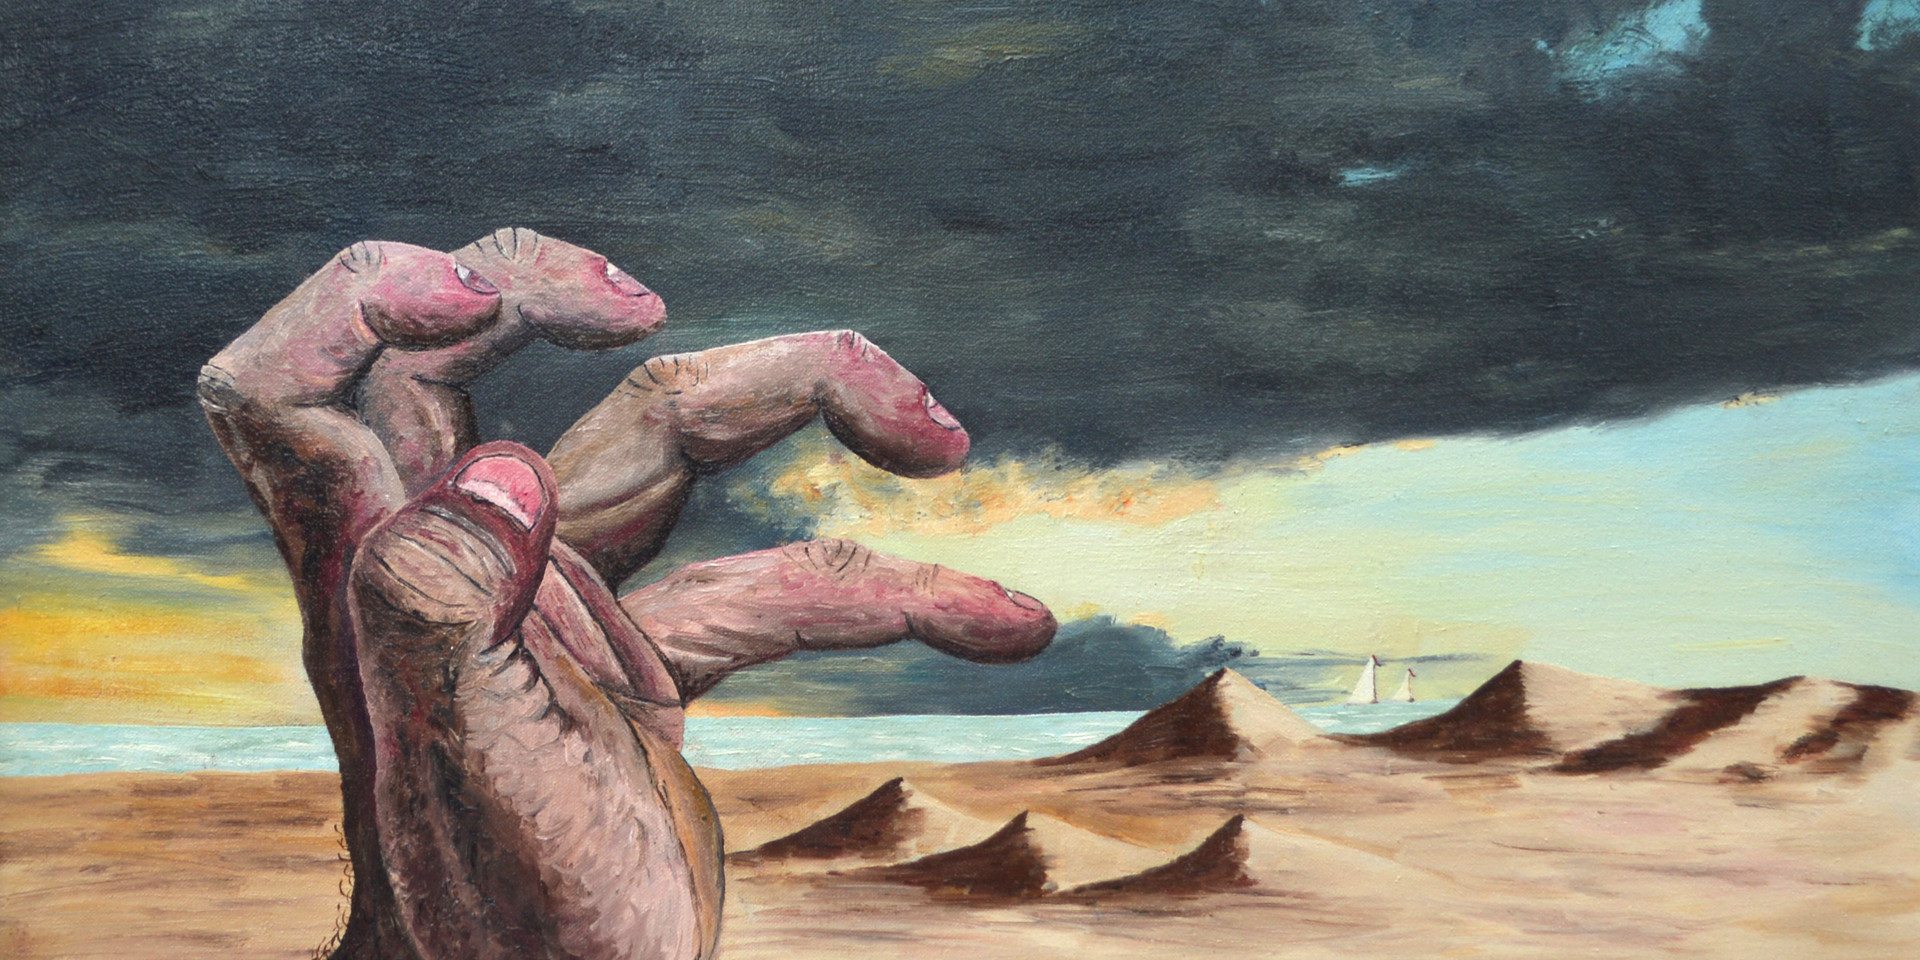 The Hand and the Beach